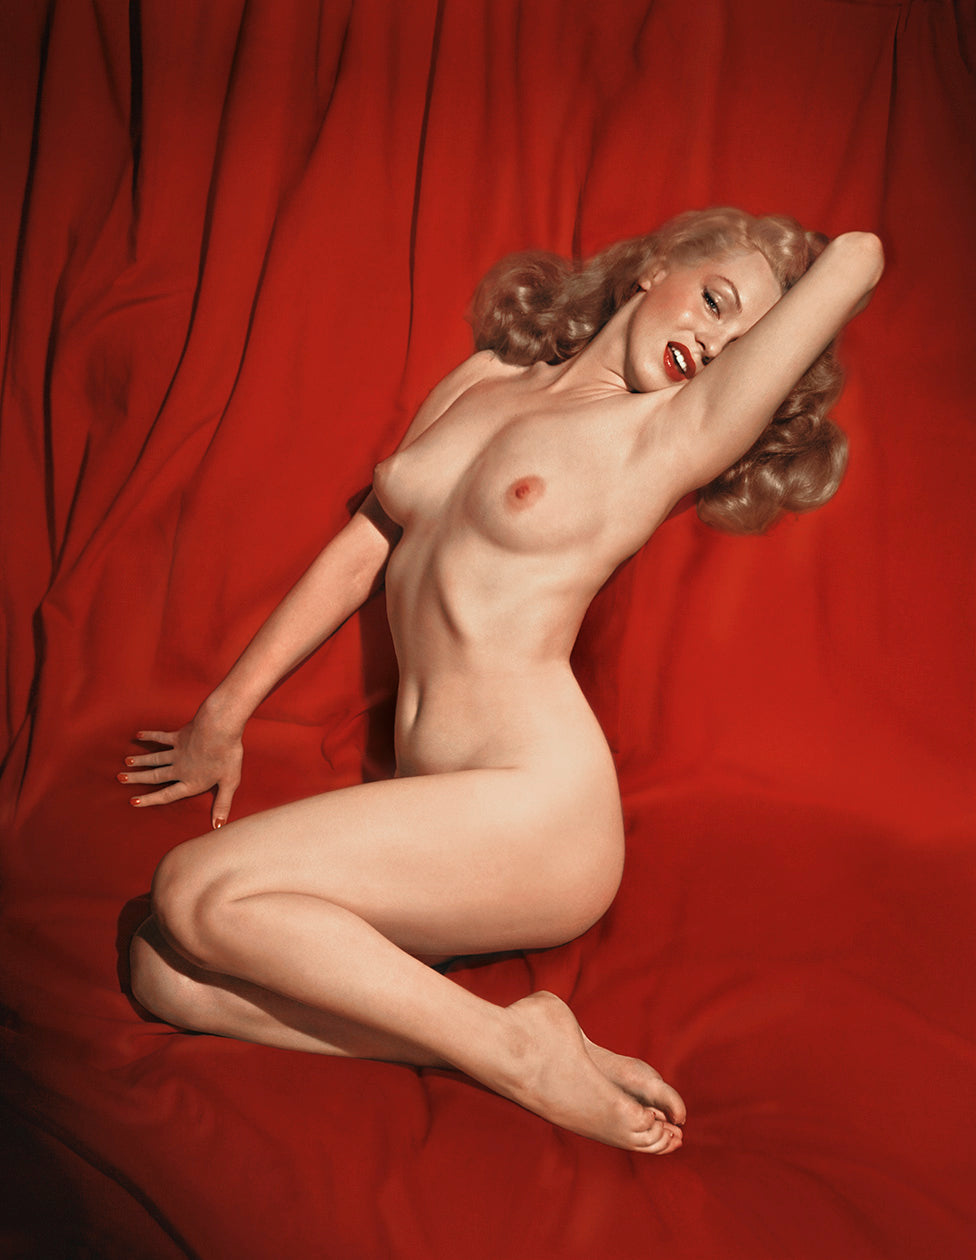 MARILYN MONROE POSE 1 - PLAYBOY MAGAZINE